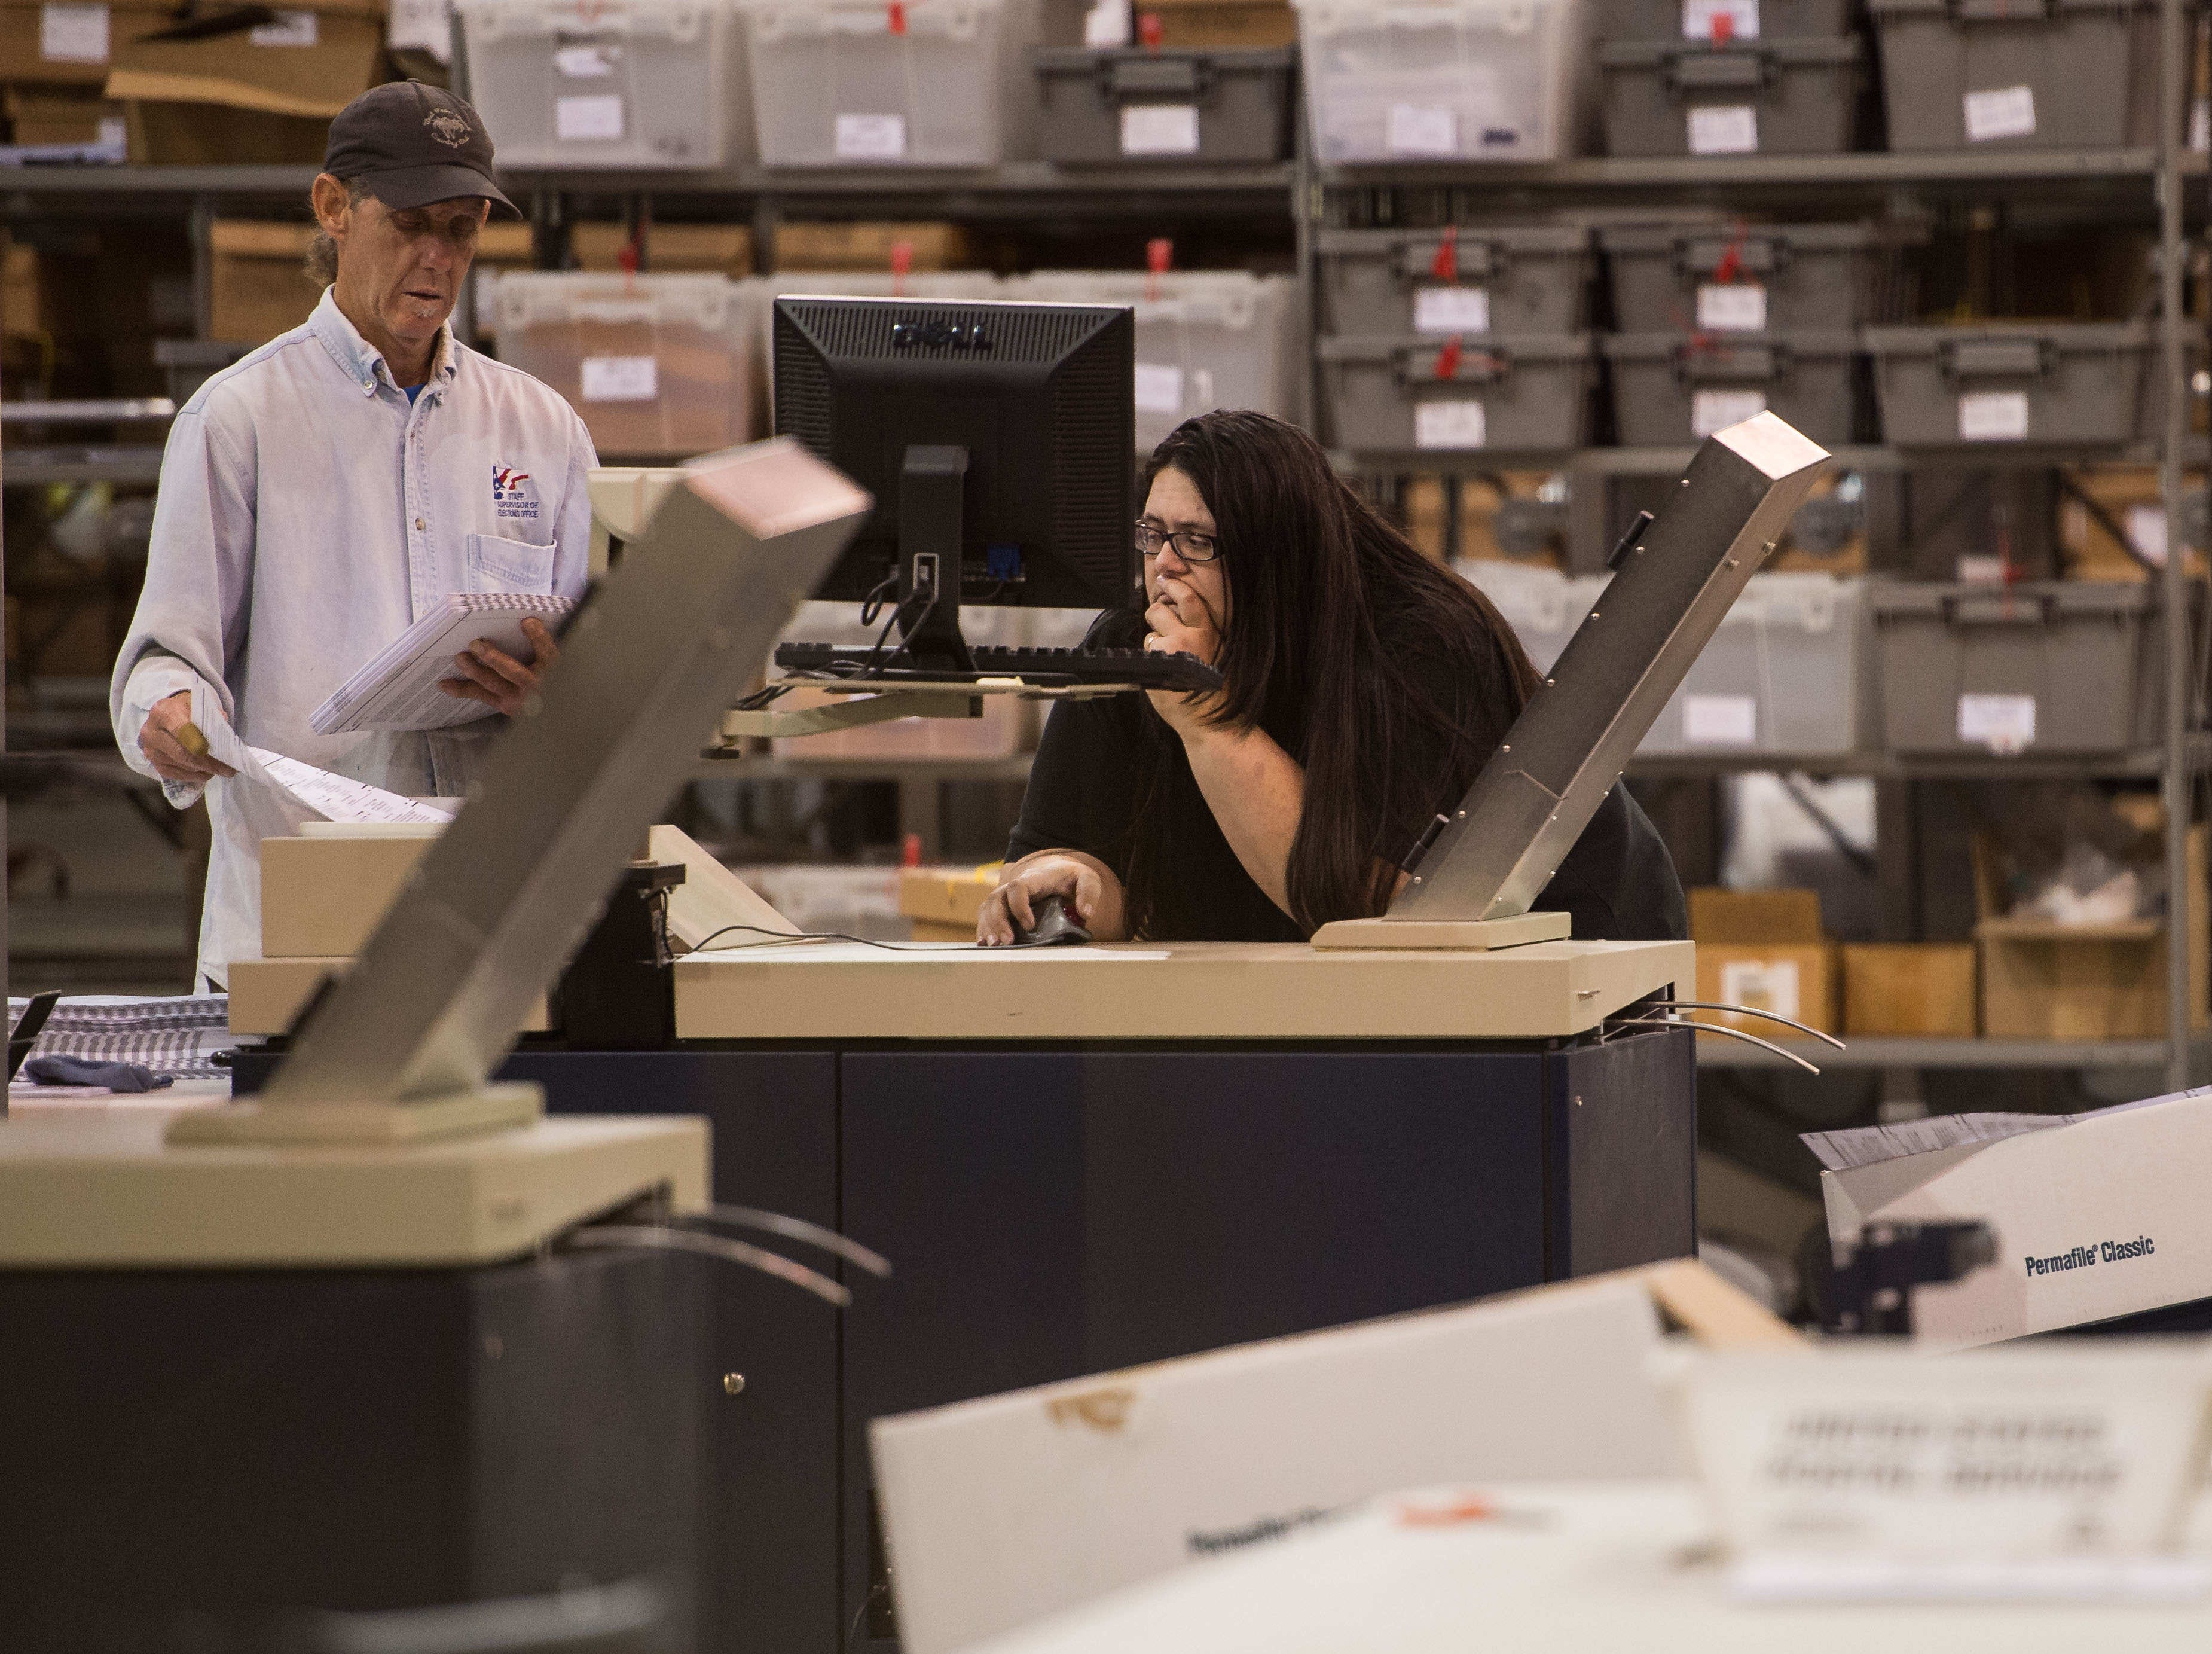 The machine recount of Midterm Elections ballots, under the direction of Supervisor of Elections Susan Bucher, takes place Thursday, Nov. 15, 2018, at the Palm Beach County Supervisor of Elections Service Center in Riviera Beach. A manual recount of some of the ballots is scheduled for Friday morning.